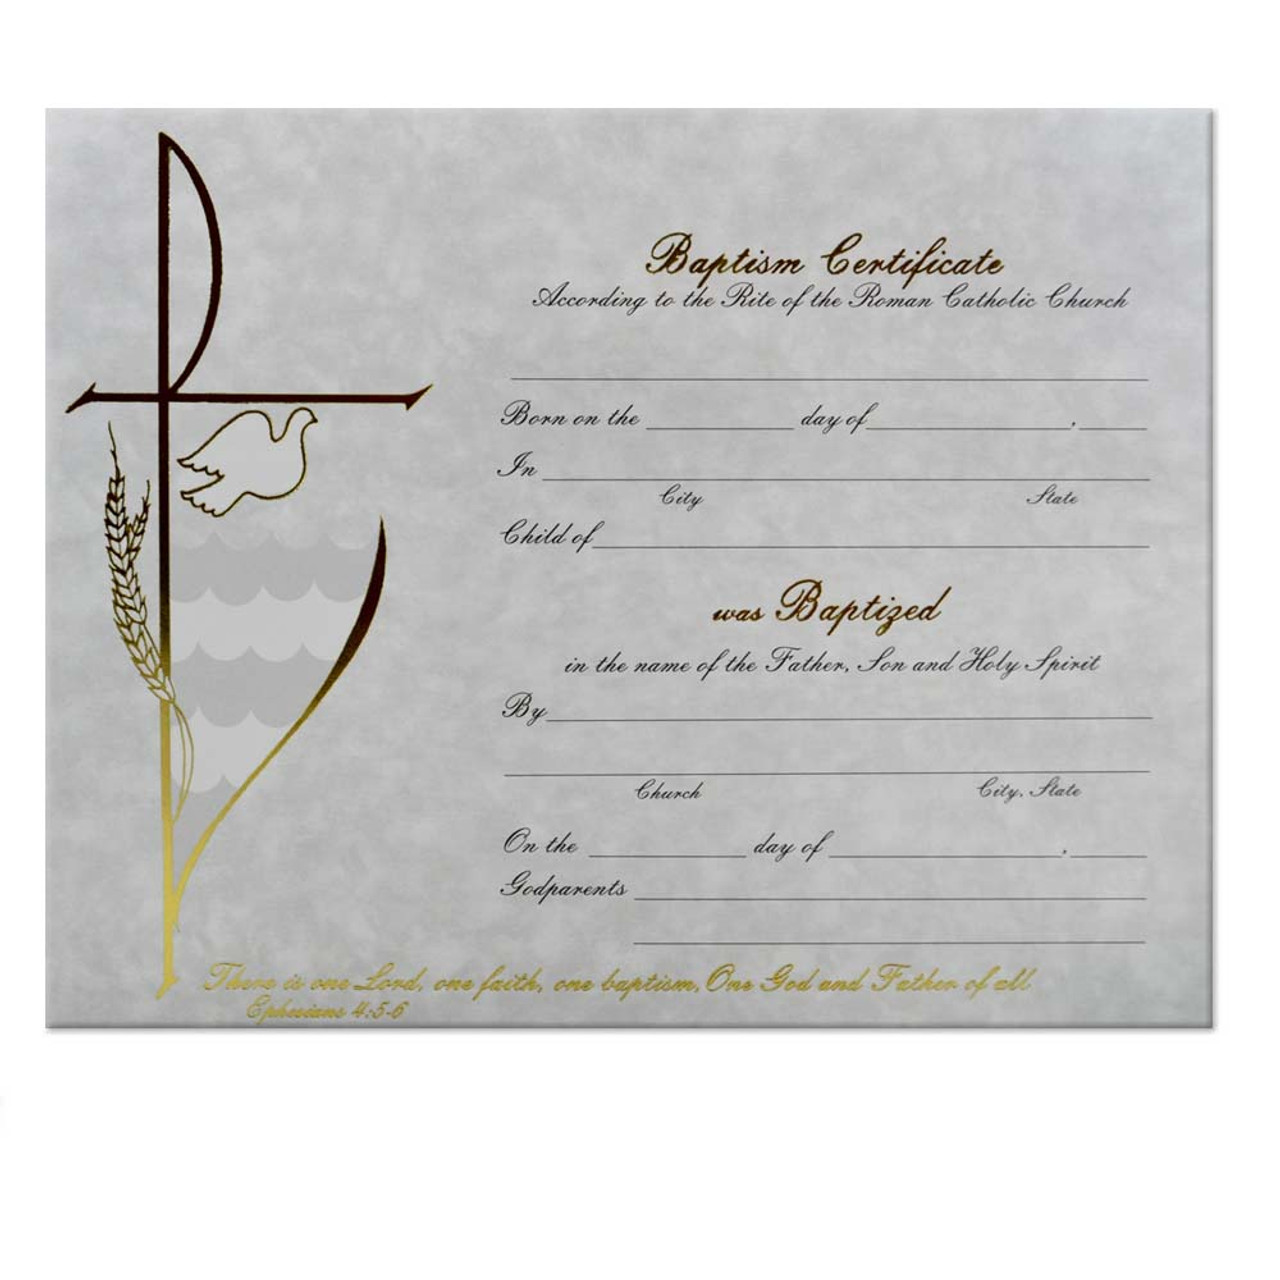 Baptism Certificate (Each)